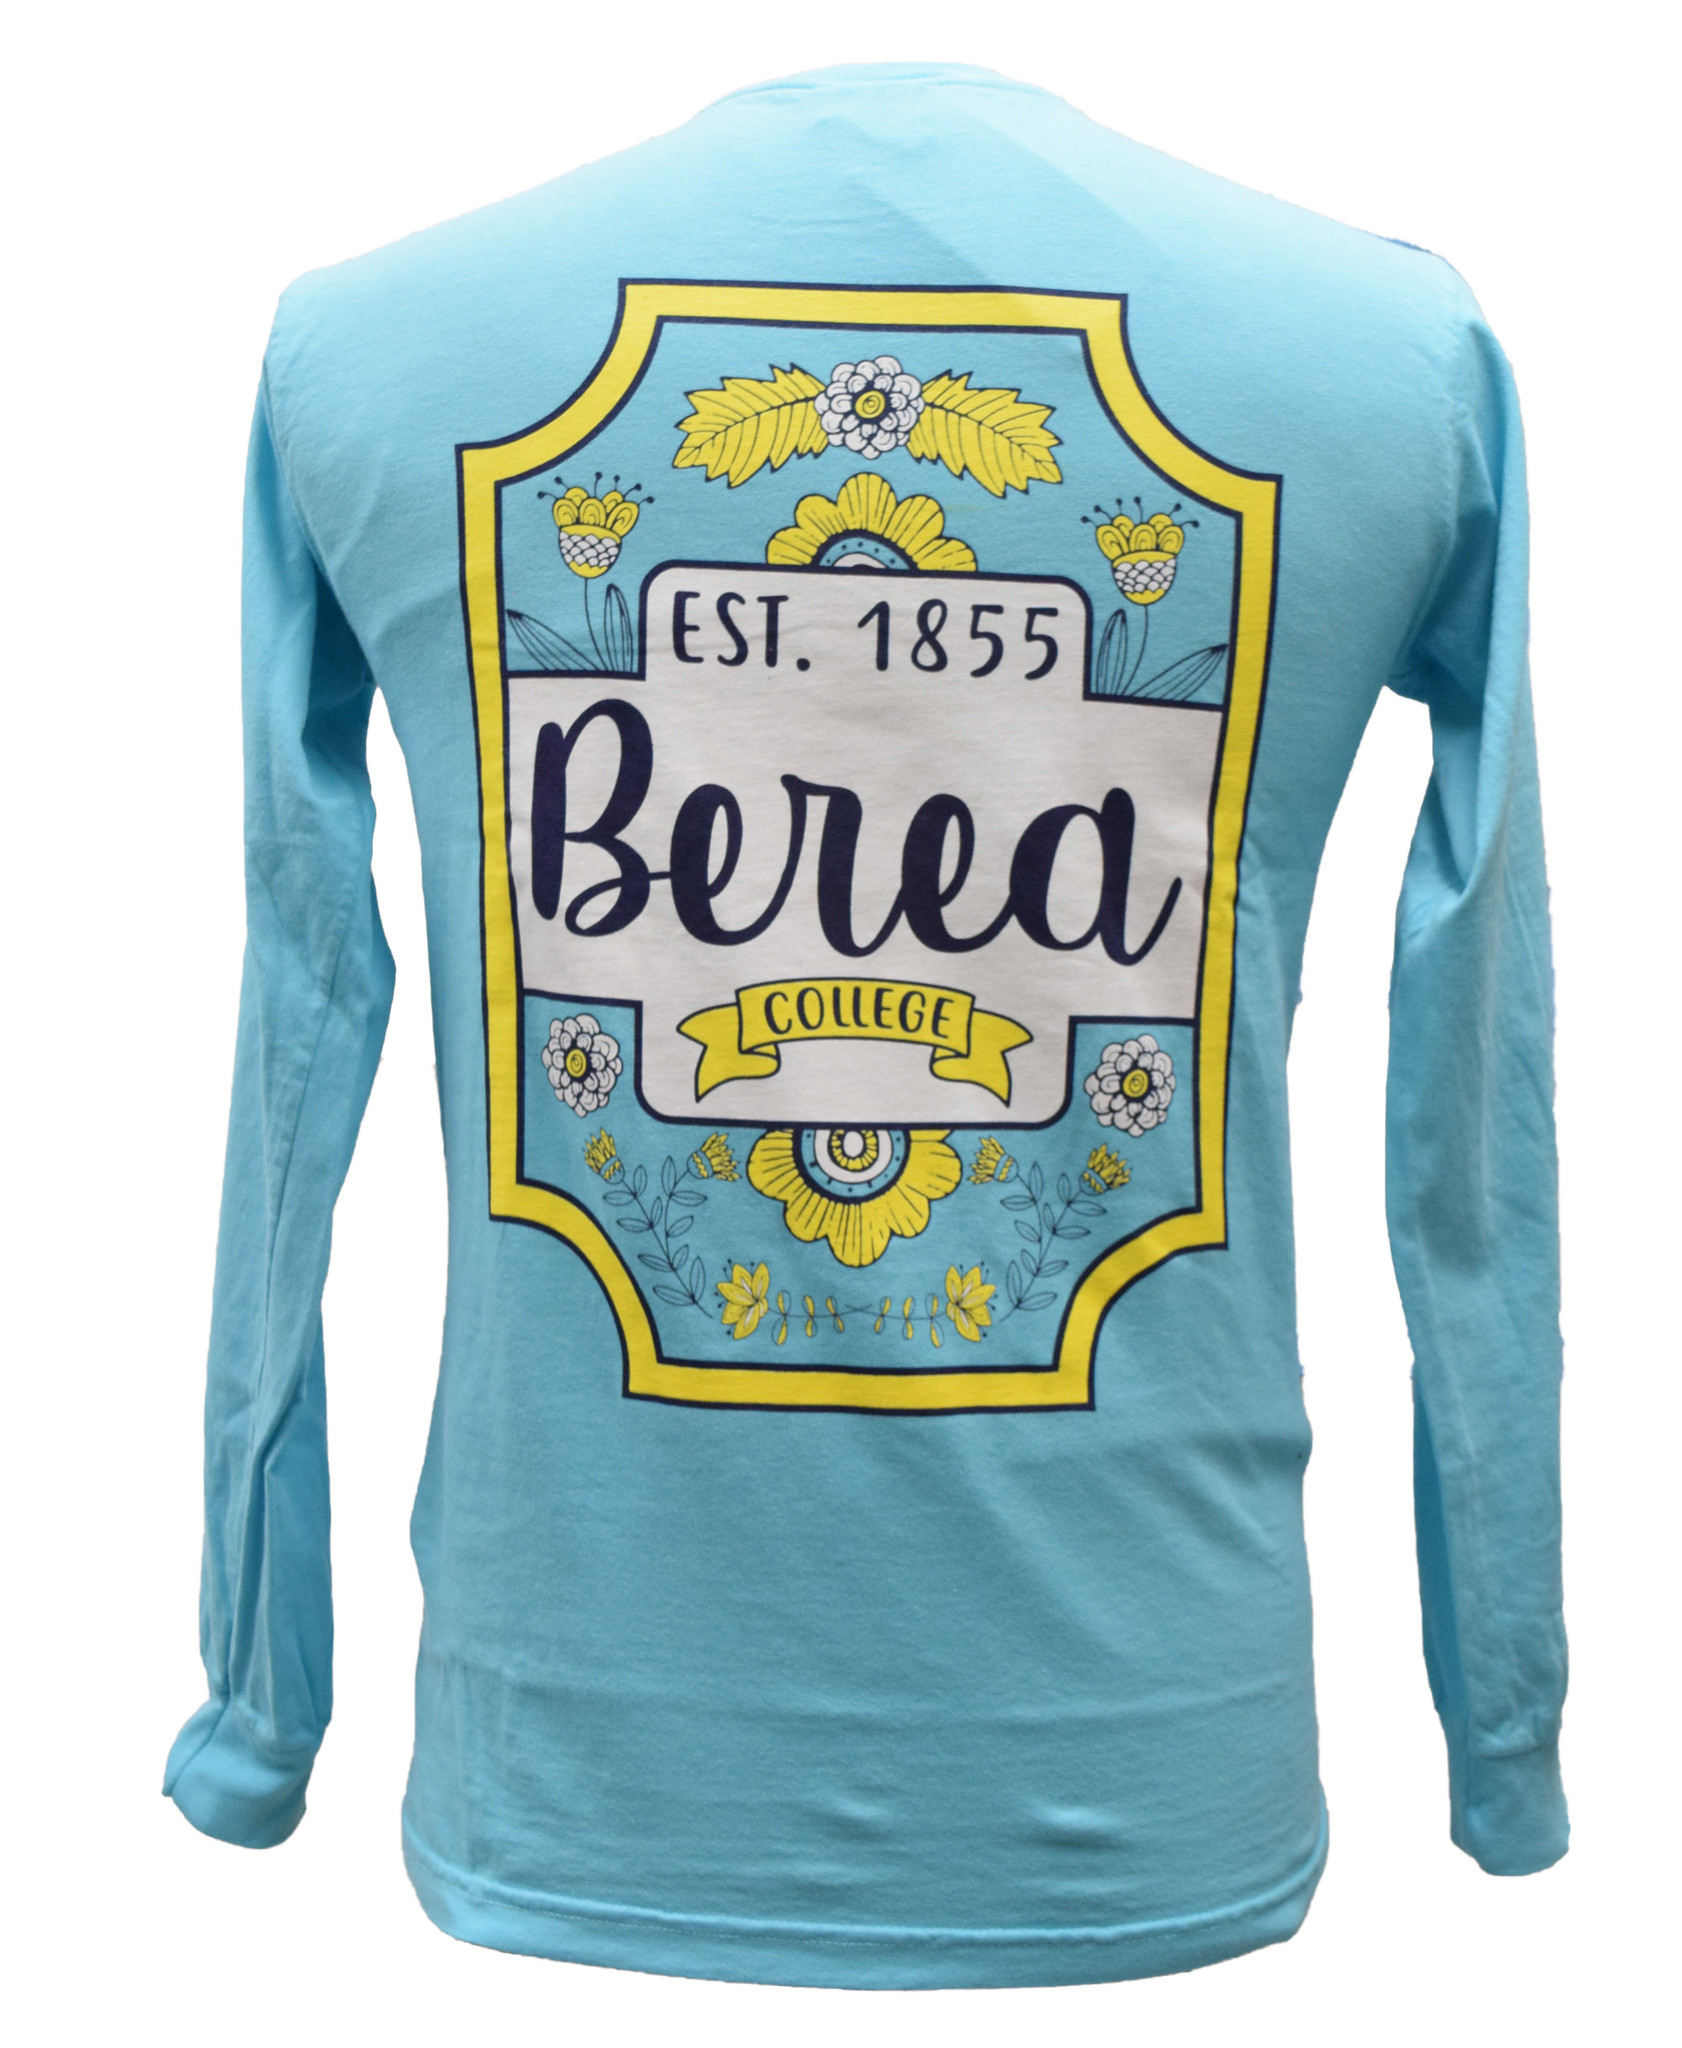 Berea College  Square and flowers T shirt-1